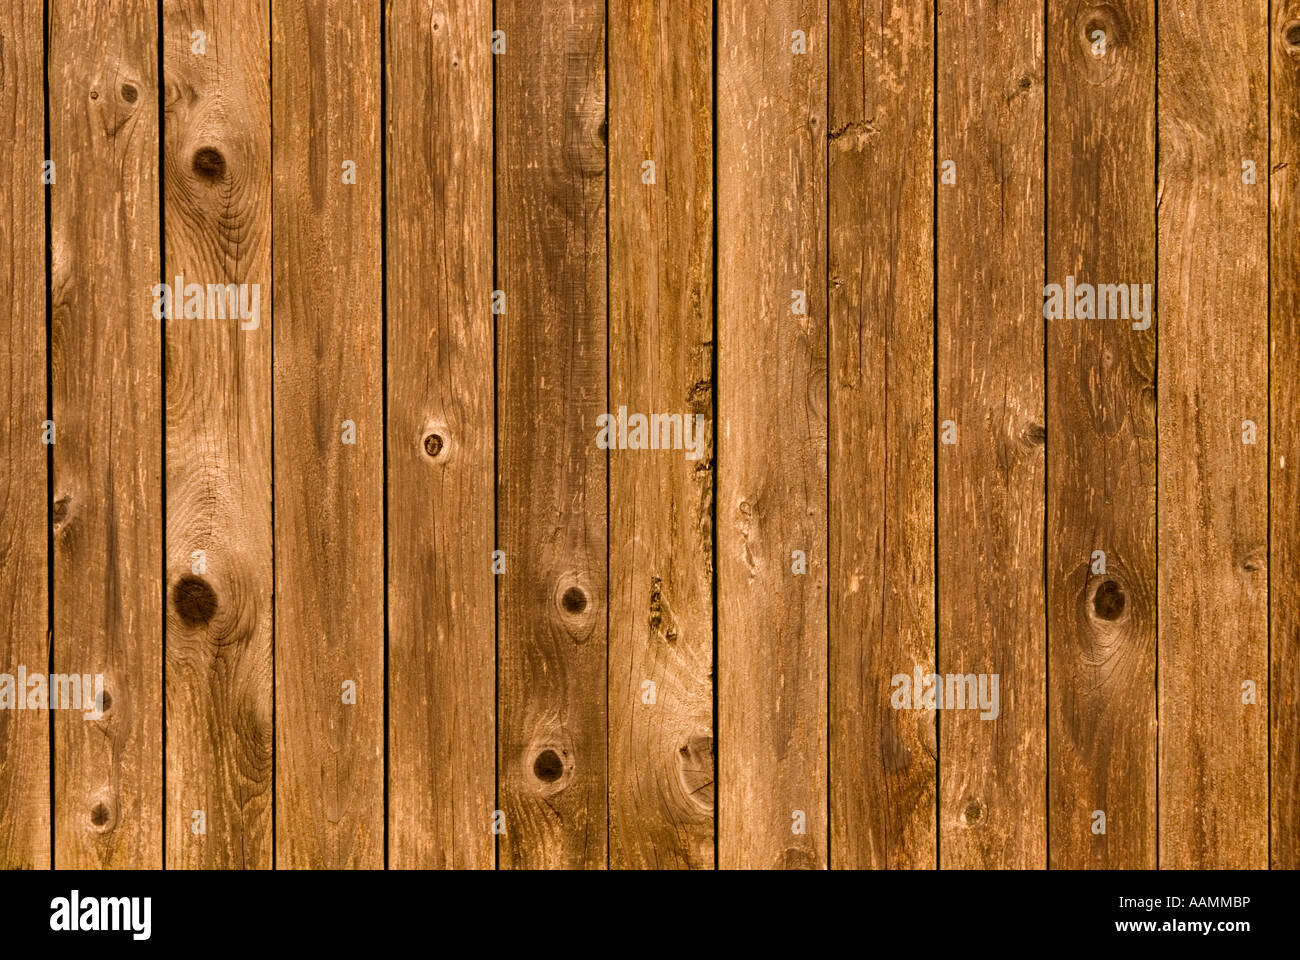 Close up of wood fence Photo Stock